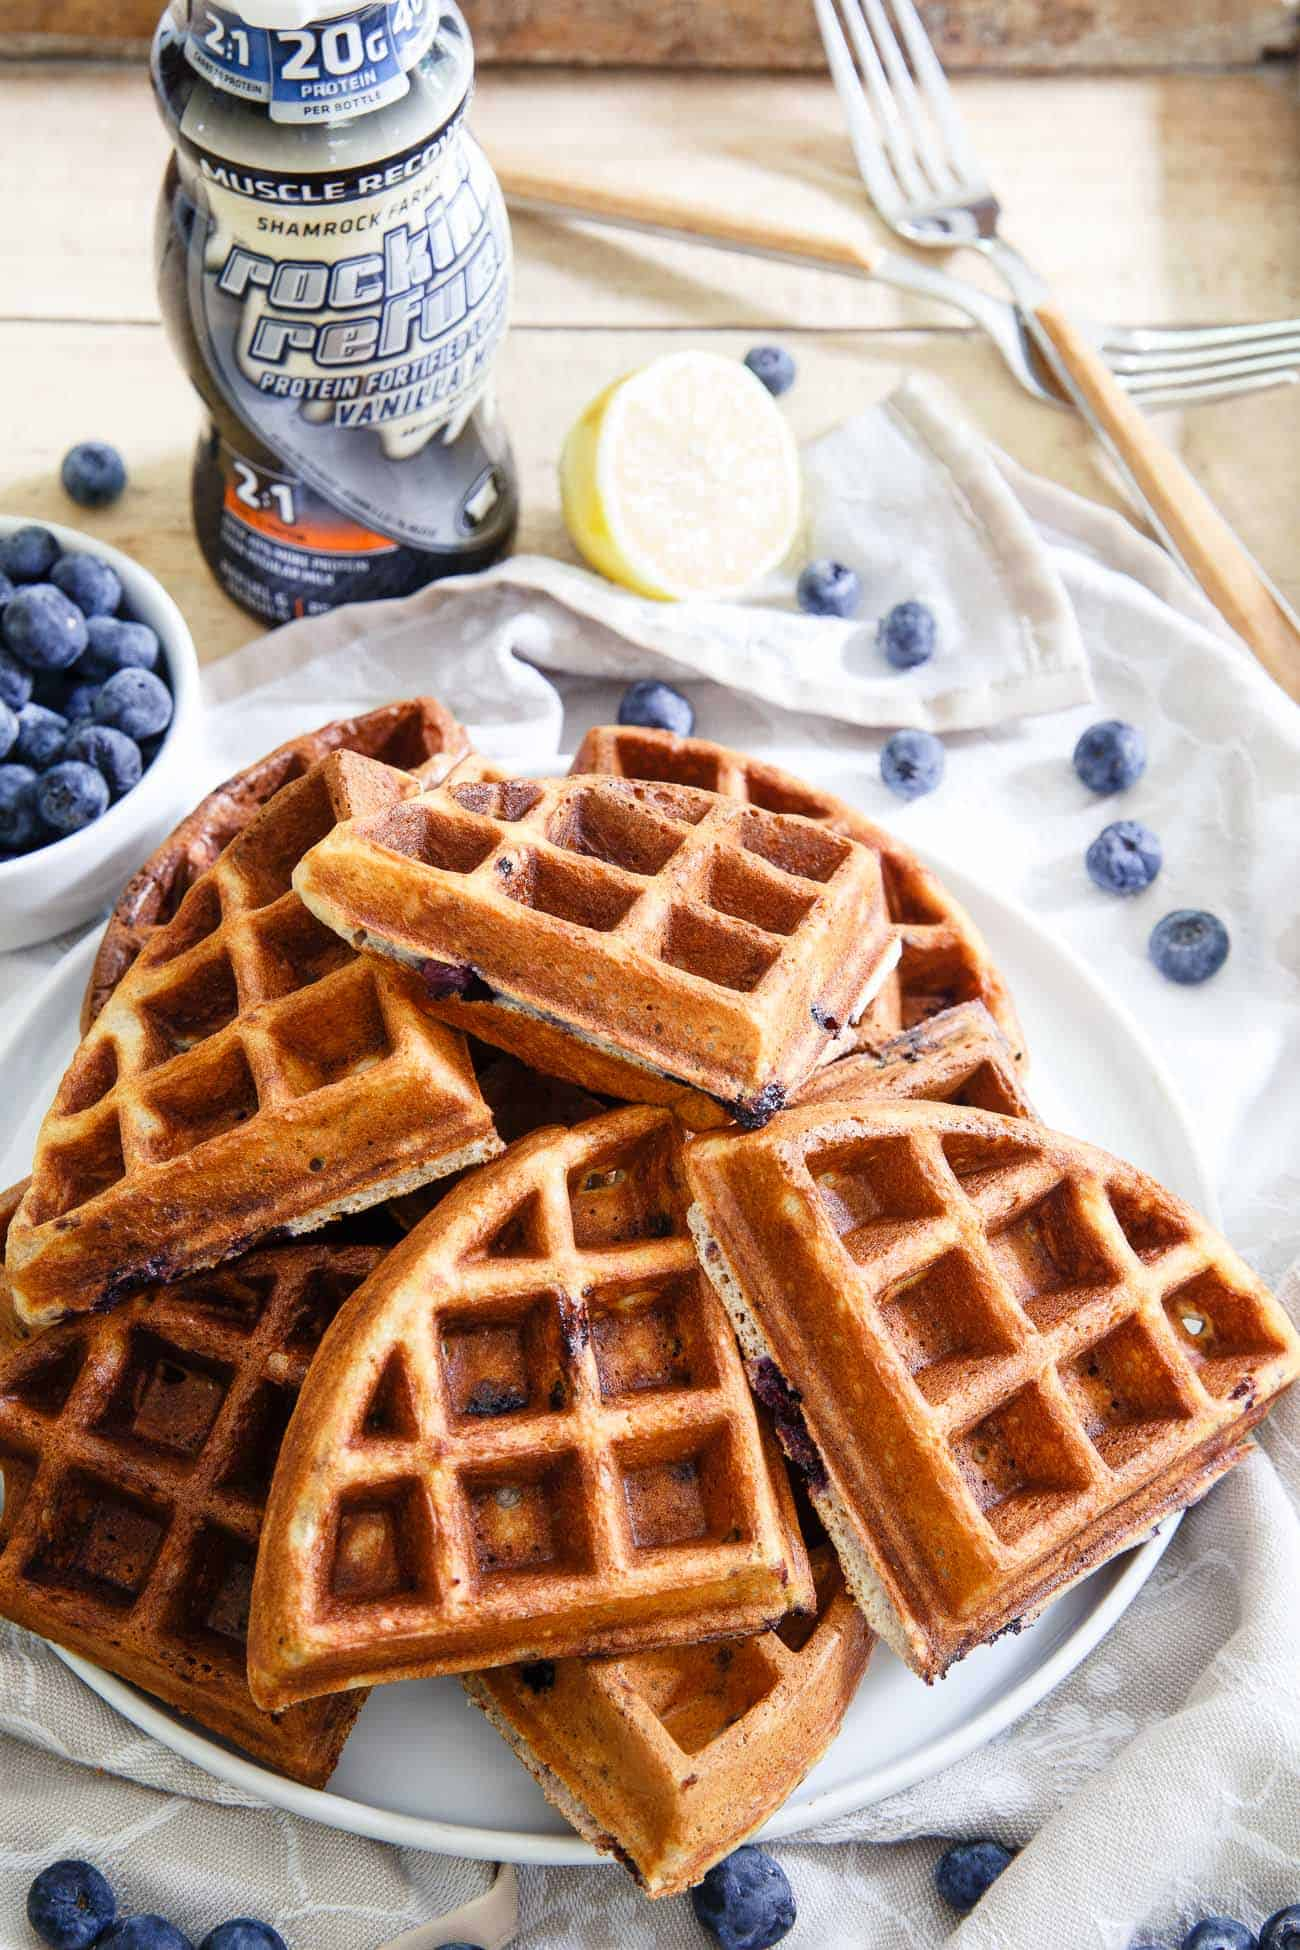 Waffle bites packed with protein, lemon flavor and blueberries can either be enjoyed for breakfast or eaten as a snack, they're delicious either way.